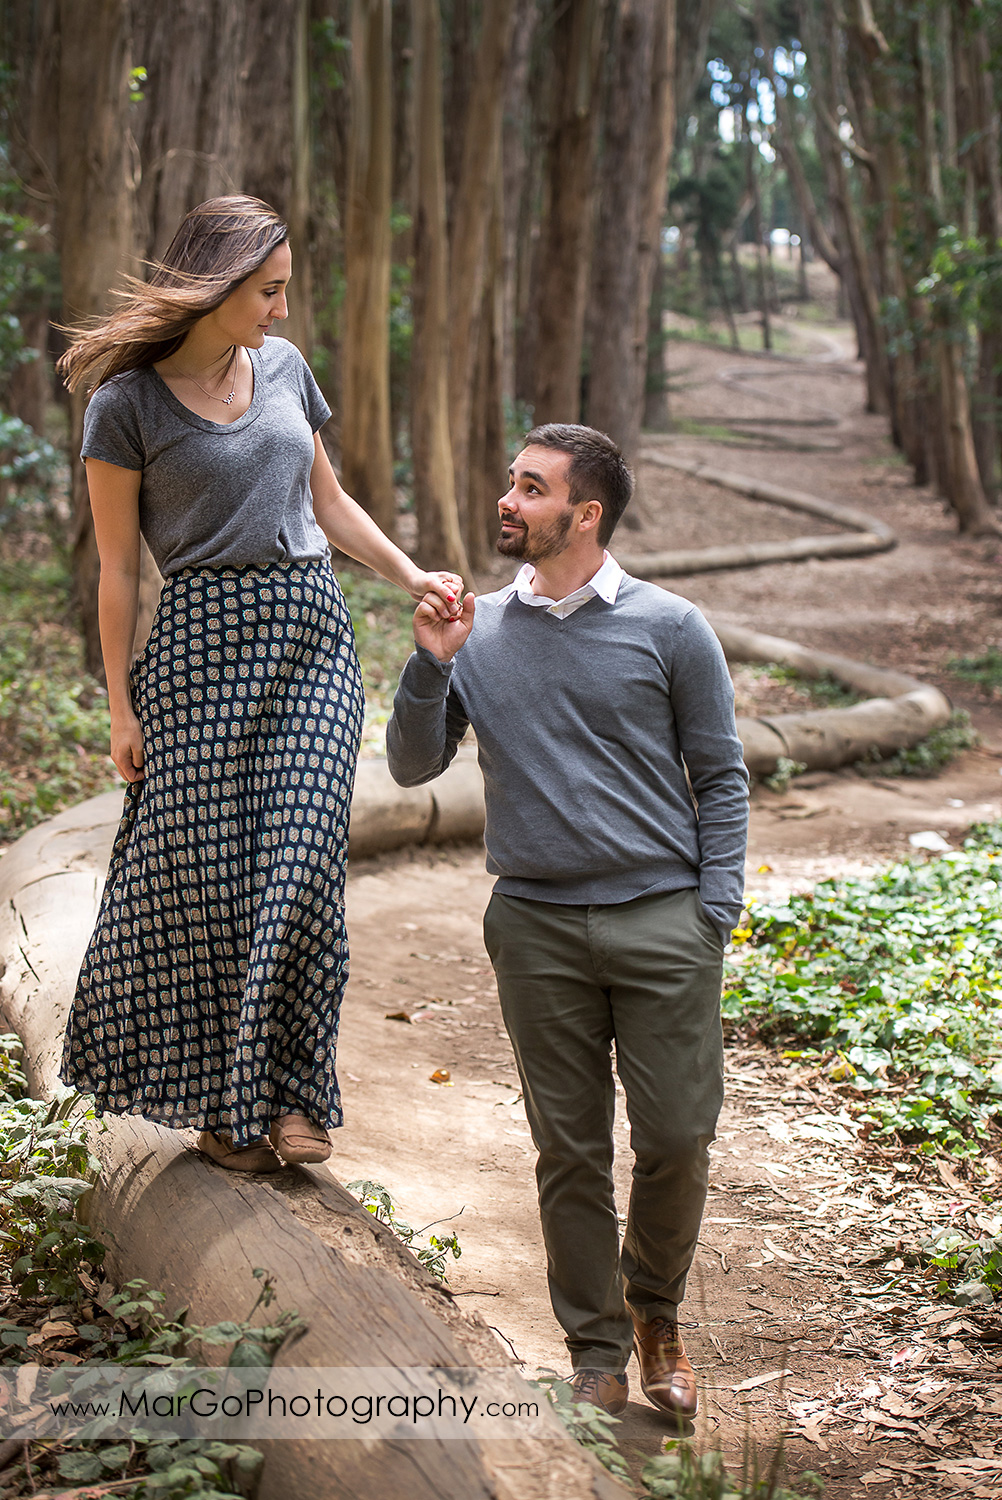 engagement session at Lover's Lane at the Presidio in San Francisco - couple holding hands and walking in the park